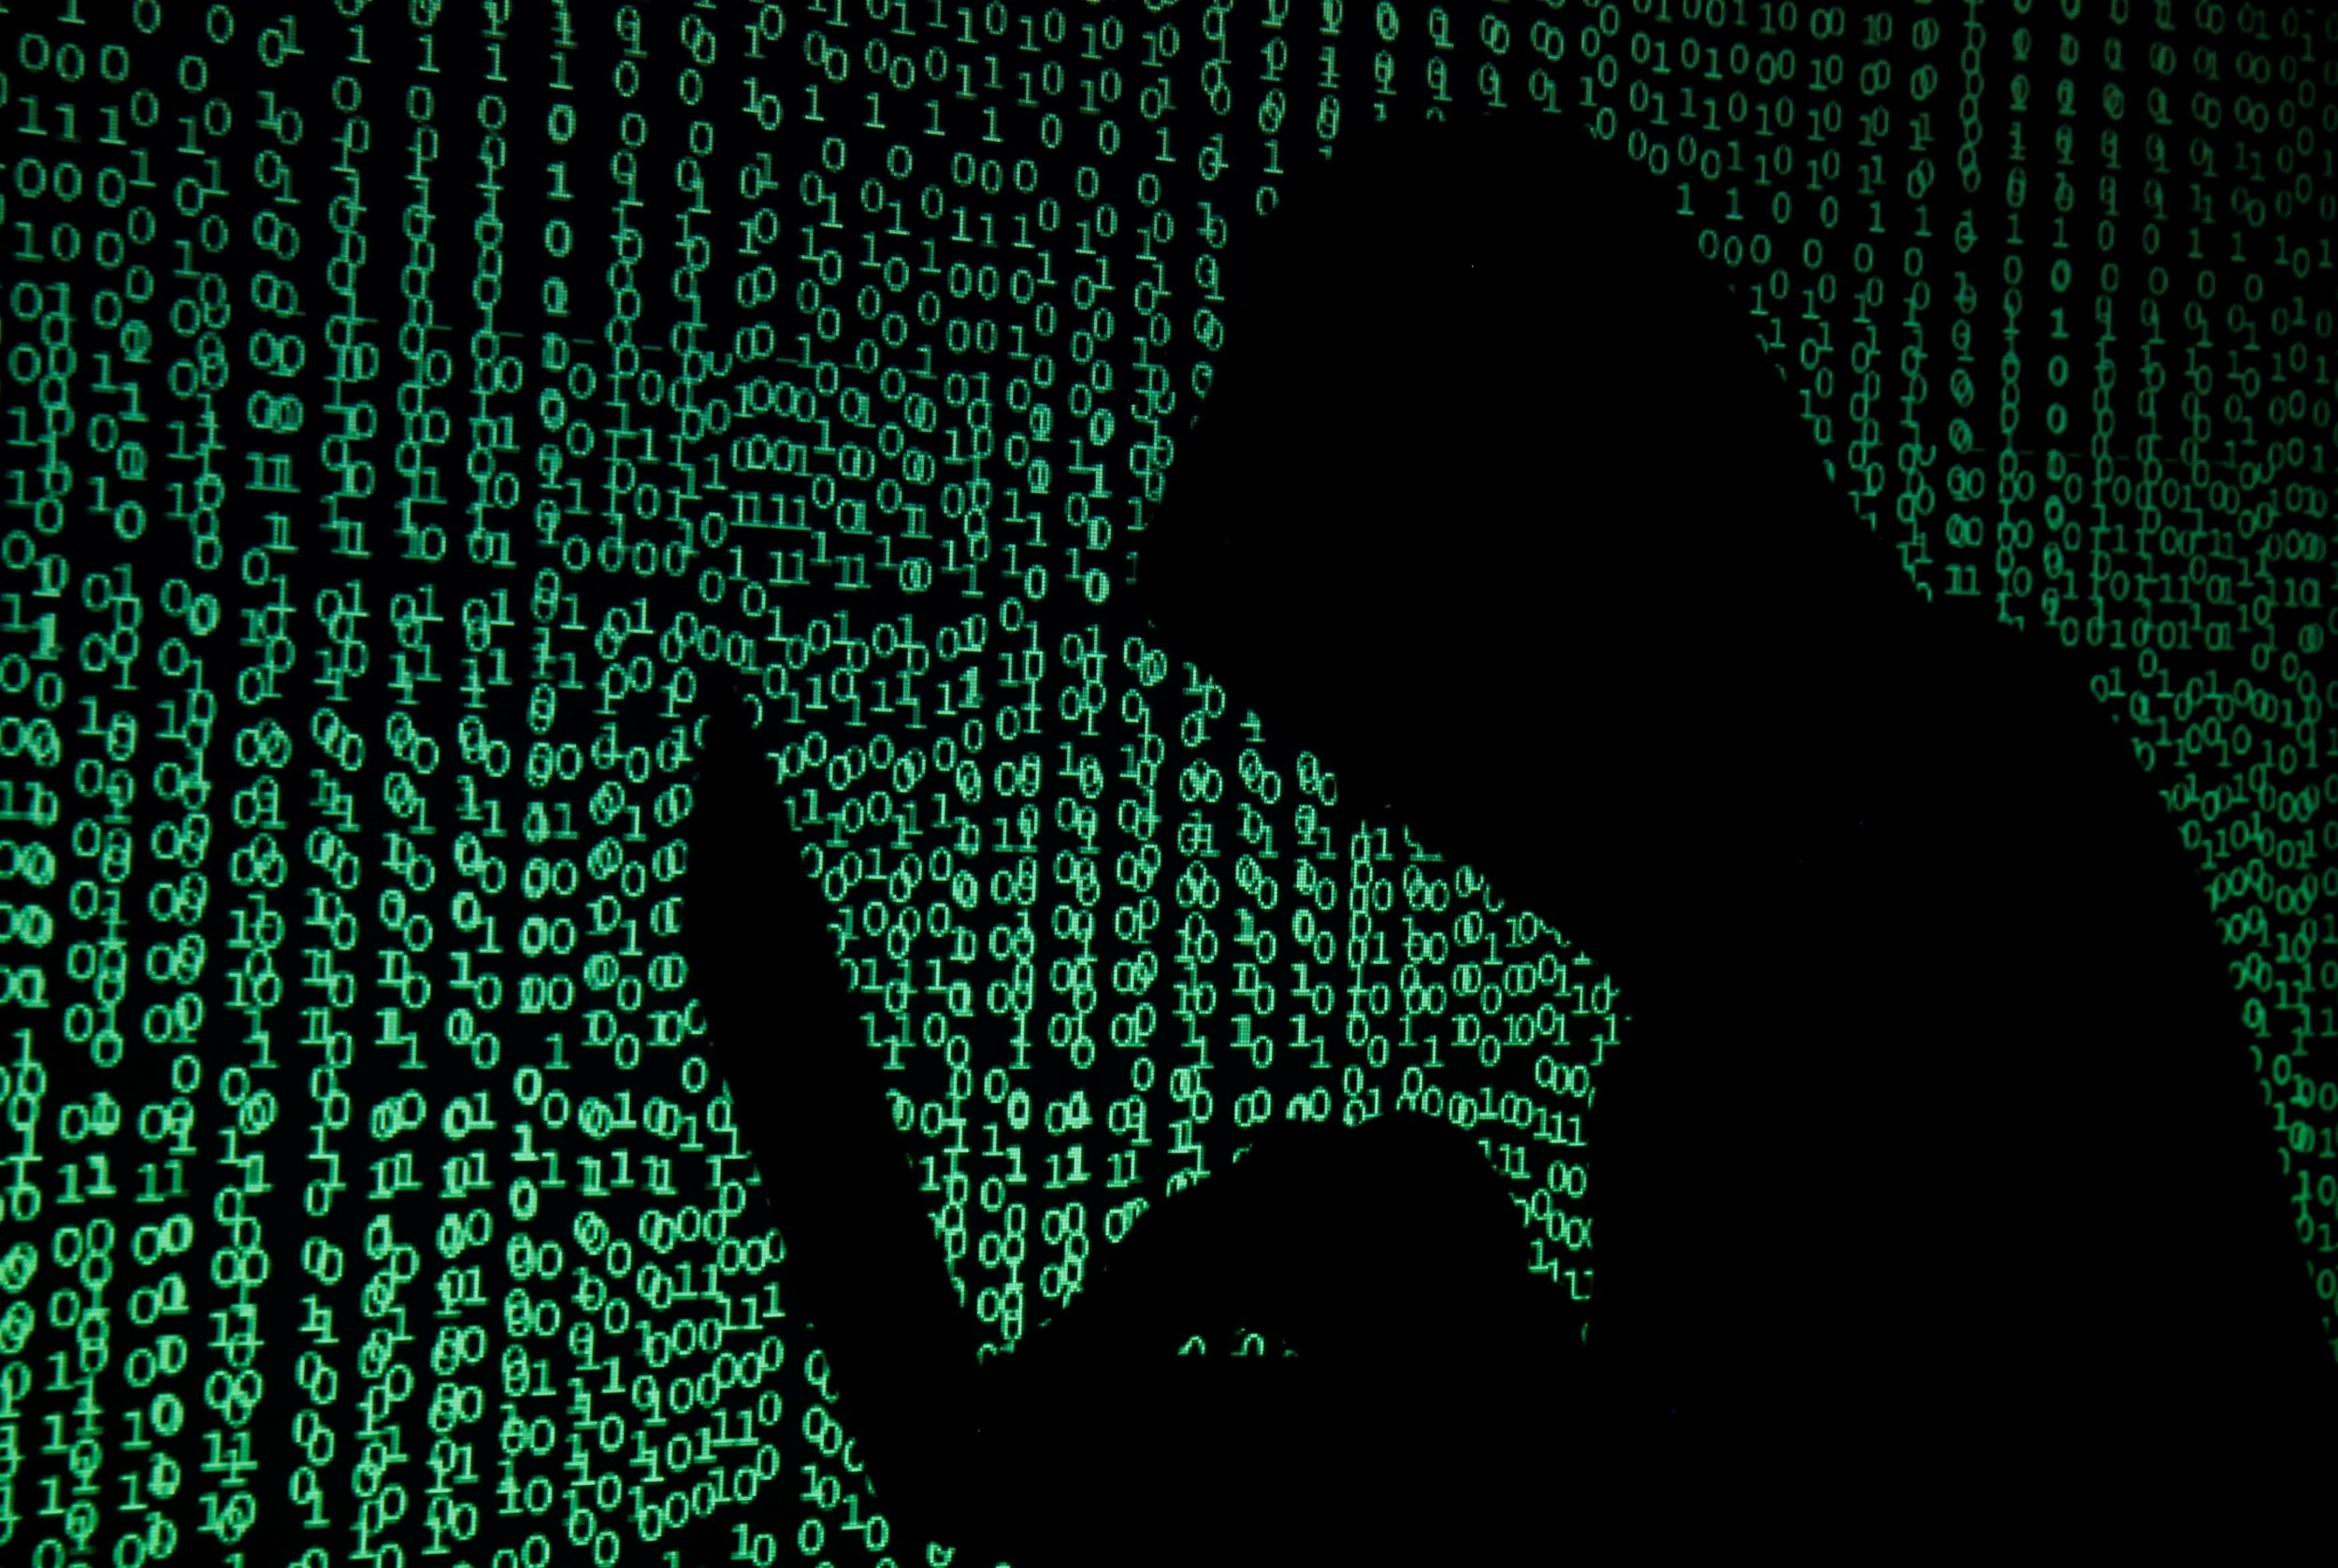 hackers steal millions banks russia moneytaker